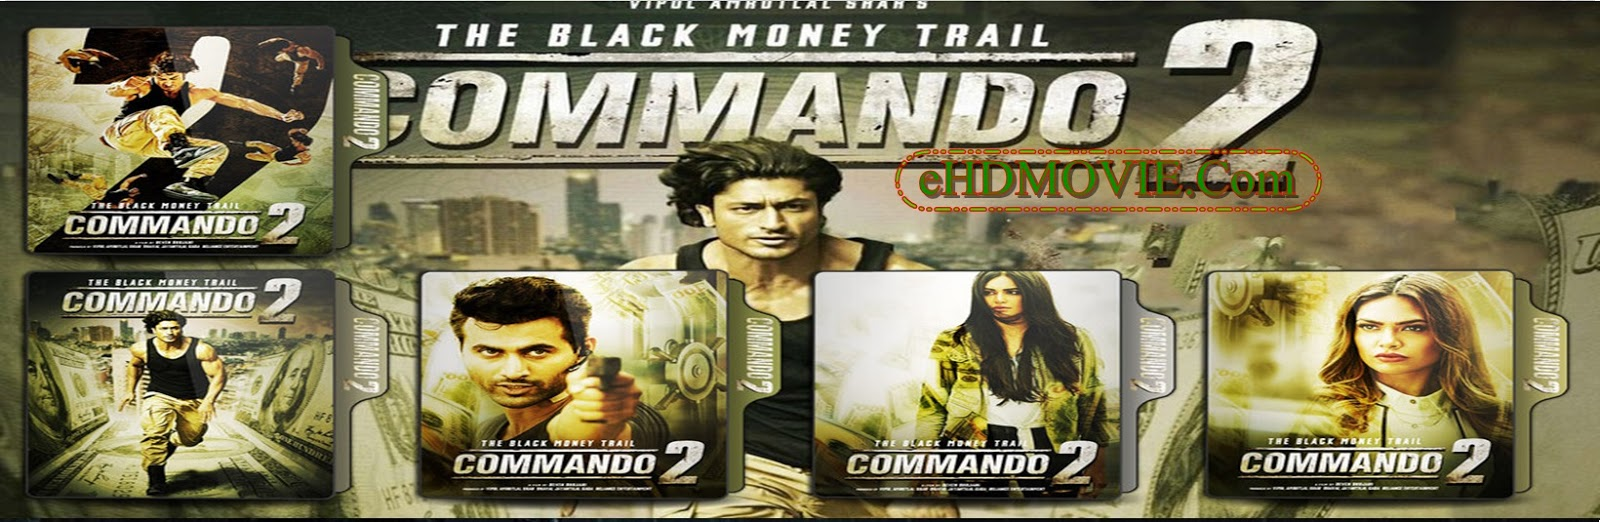 Commando 2 2017 Full Movie Hindi 720p - 480p ORG BRRip 350MB - 1GB ESubs Free Download